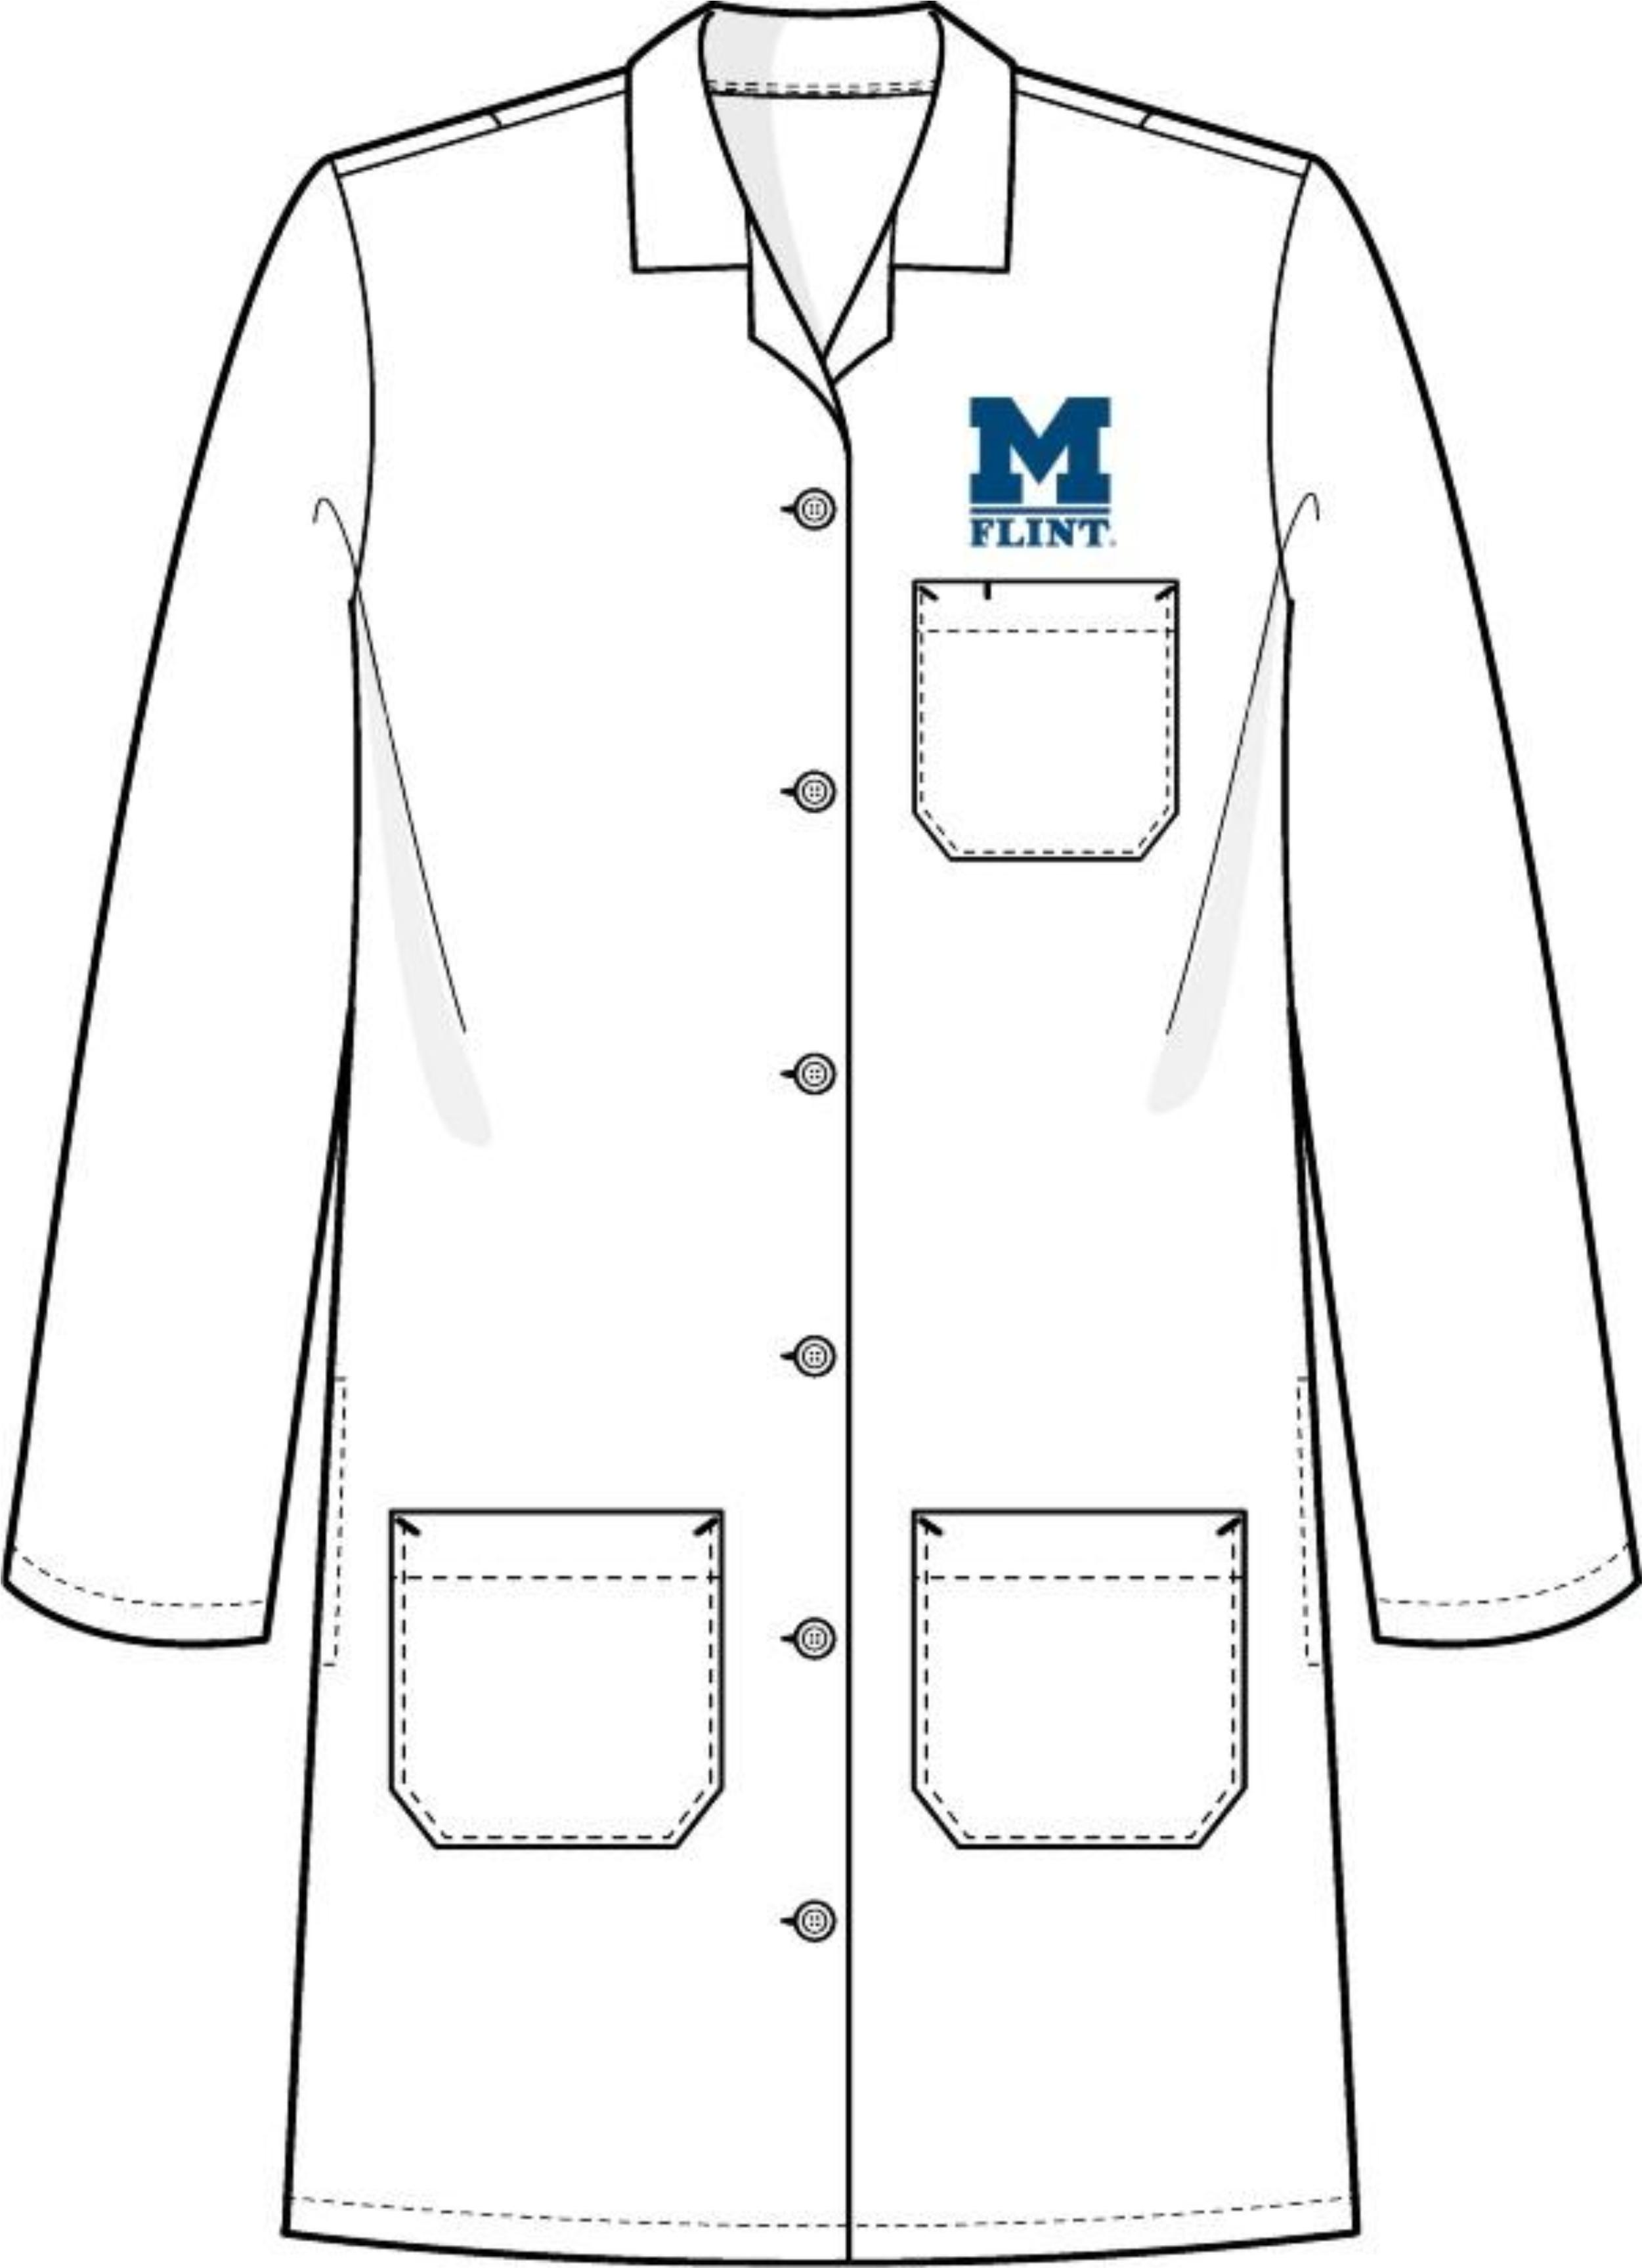 Apron Clipart Science Apron Science Transparent Free For